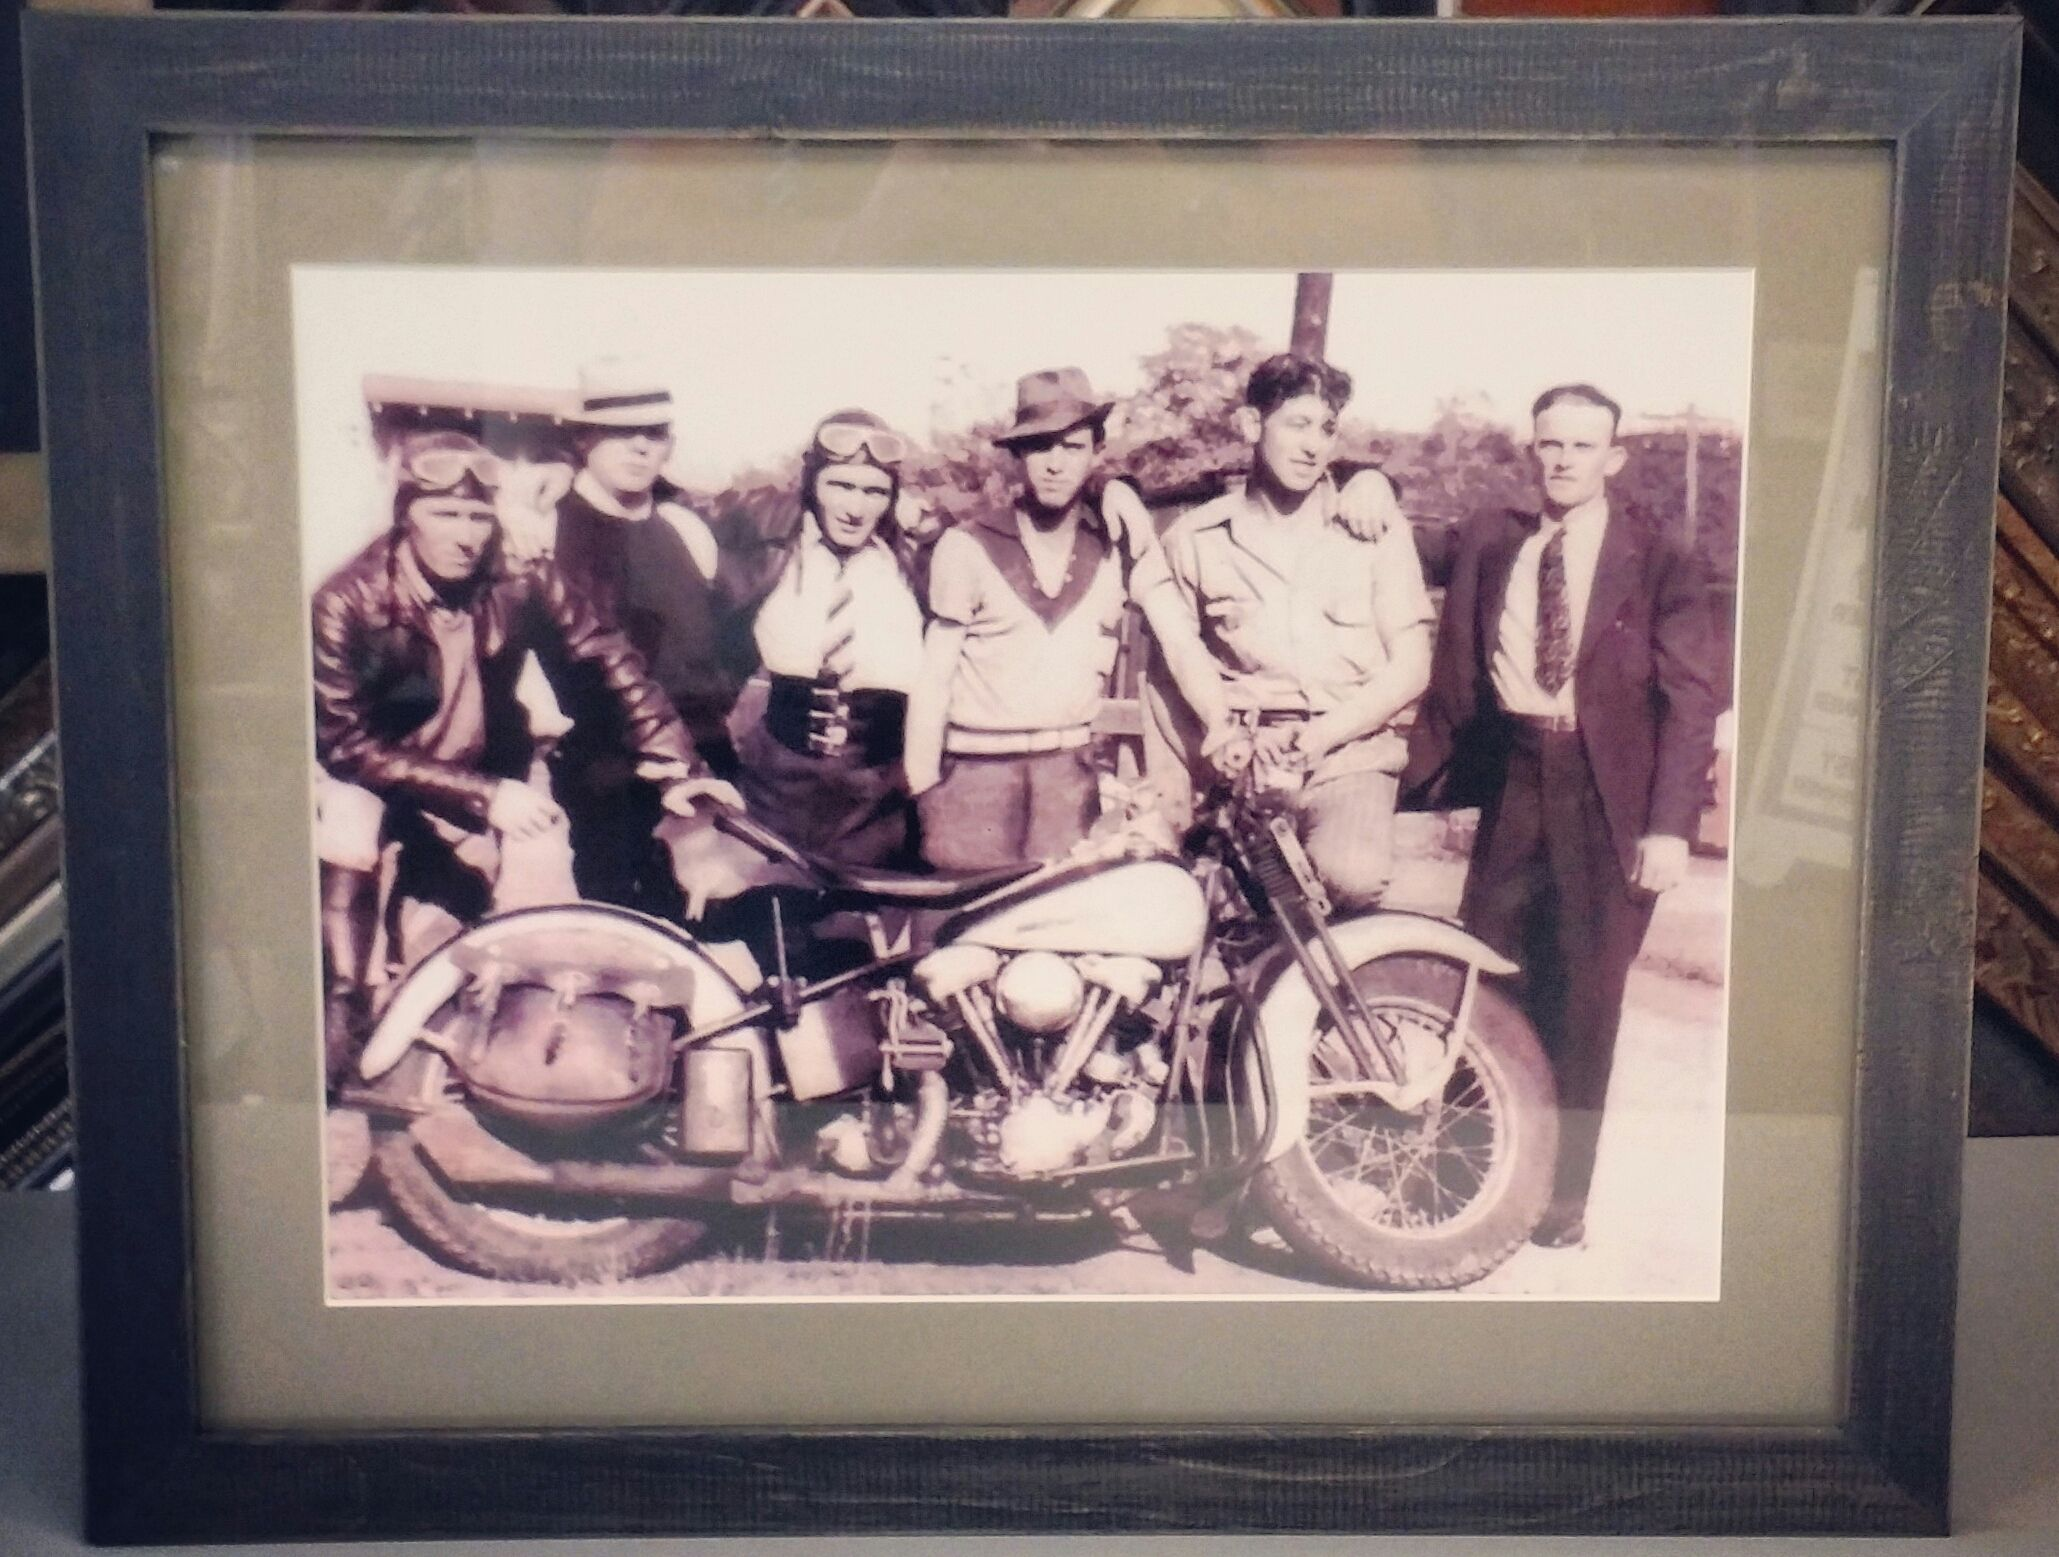 We have plenty of rustic frames to compliment your vintage photos ...